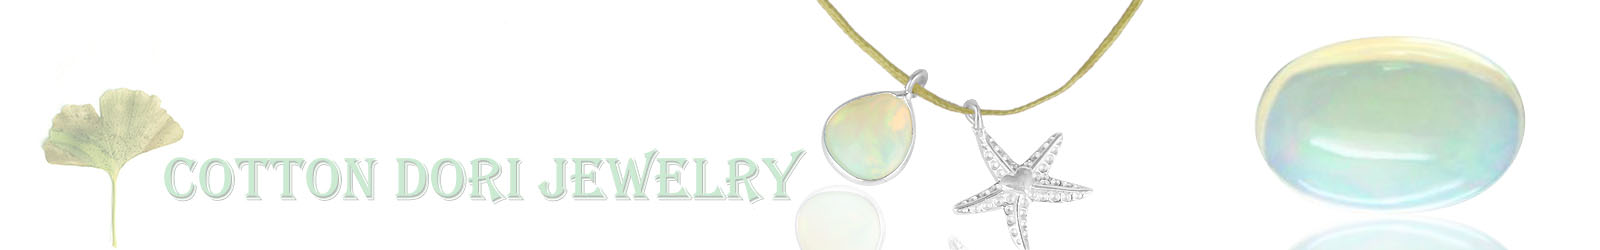 Online Cotton Dory Jewelry Store, Shop in Jaipur